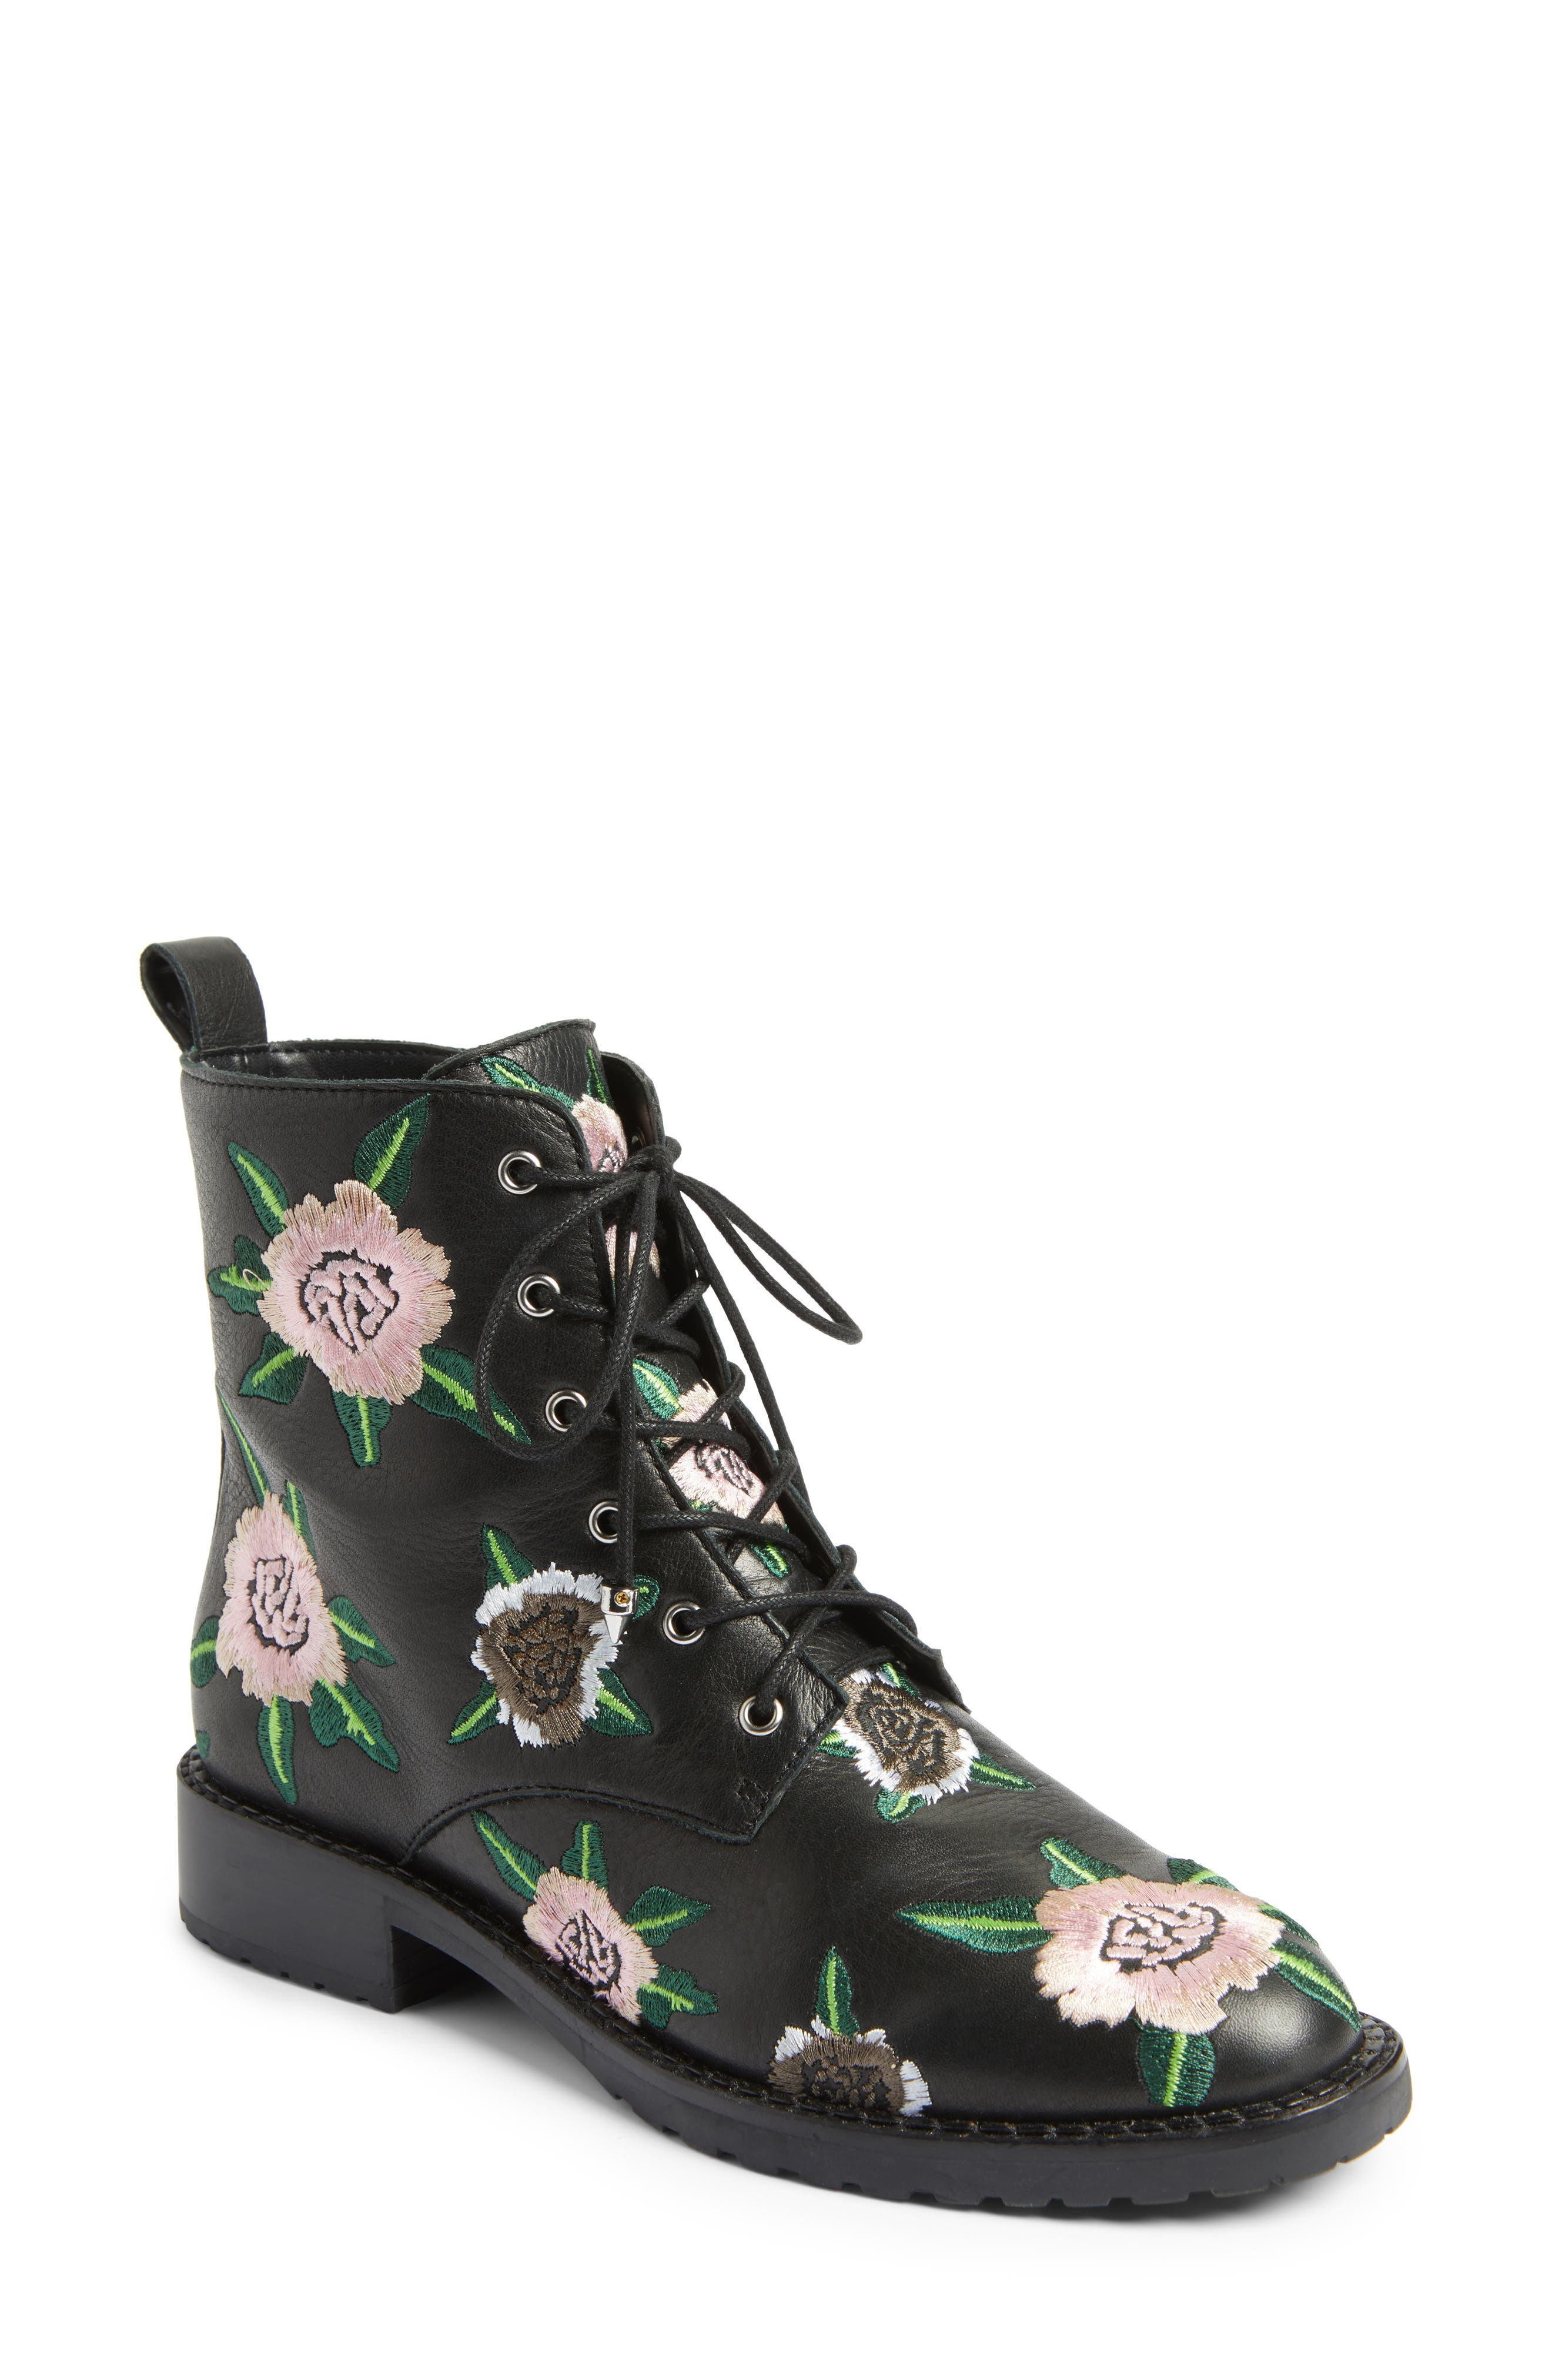 Rebecca Minkoff Gerry Embroidered Lace-Up Boot h8mUQ